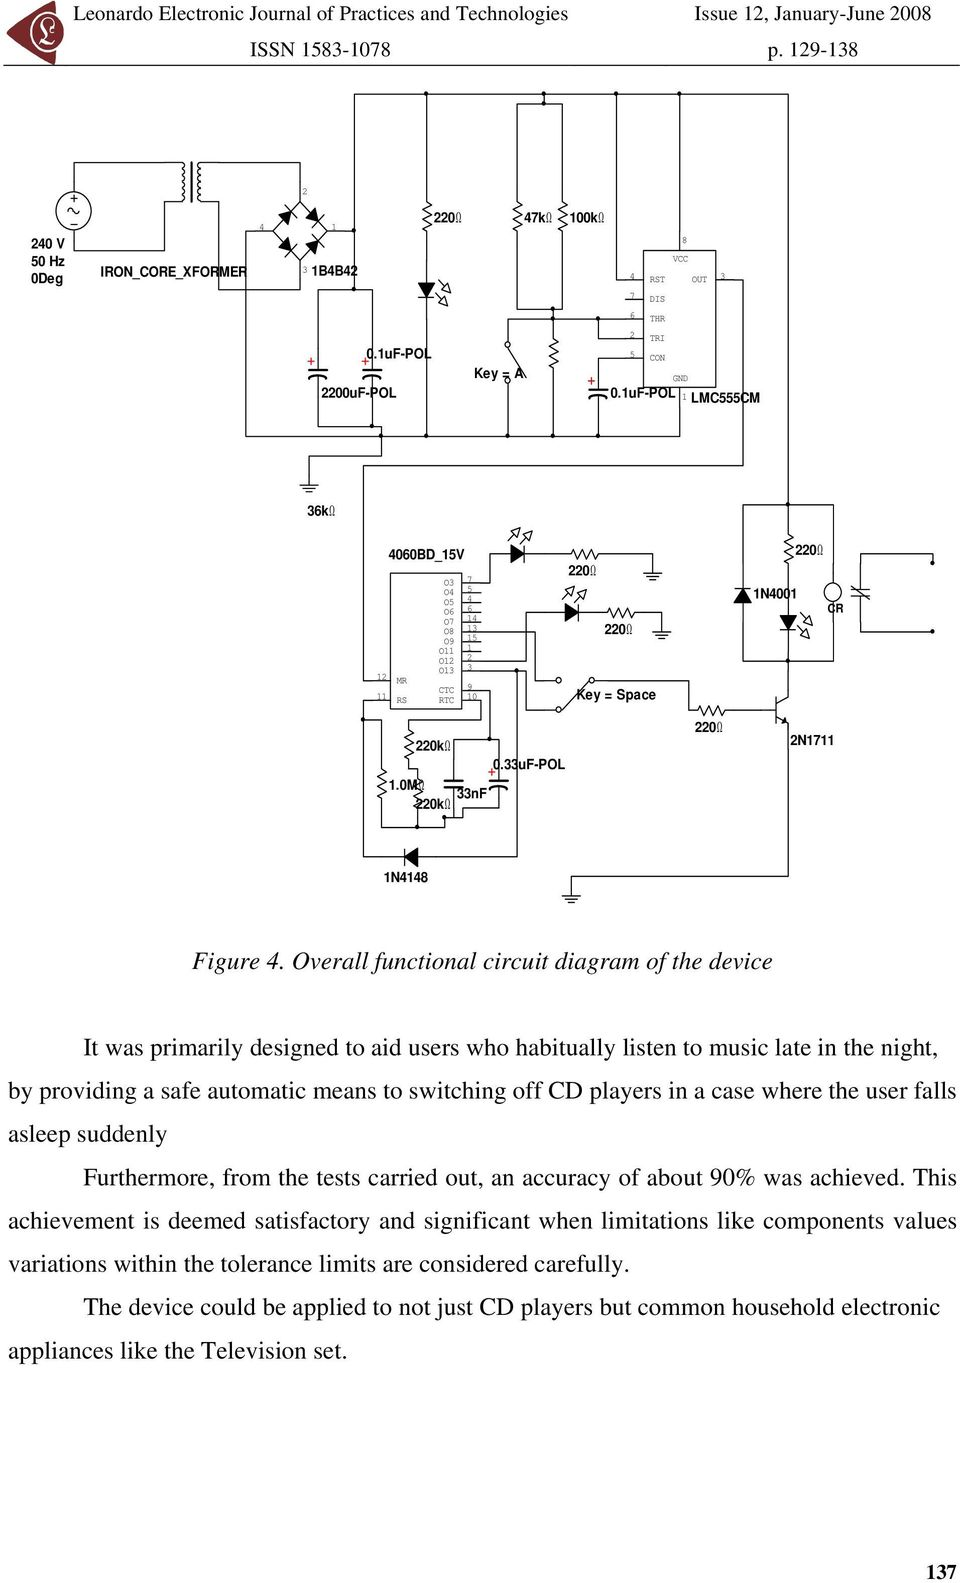 Development Of A Light Dependent Automatic Off Timer For House Bistable Circuit Diagram Composed 555 Basiccircuit Uf Pol Lmc555cm 36k 2 4060bd 5v Mr Rs O3 7 O4 5 O5 4